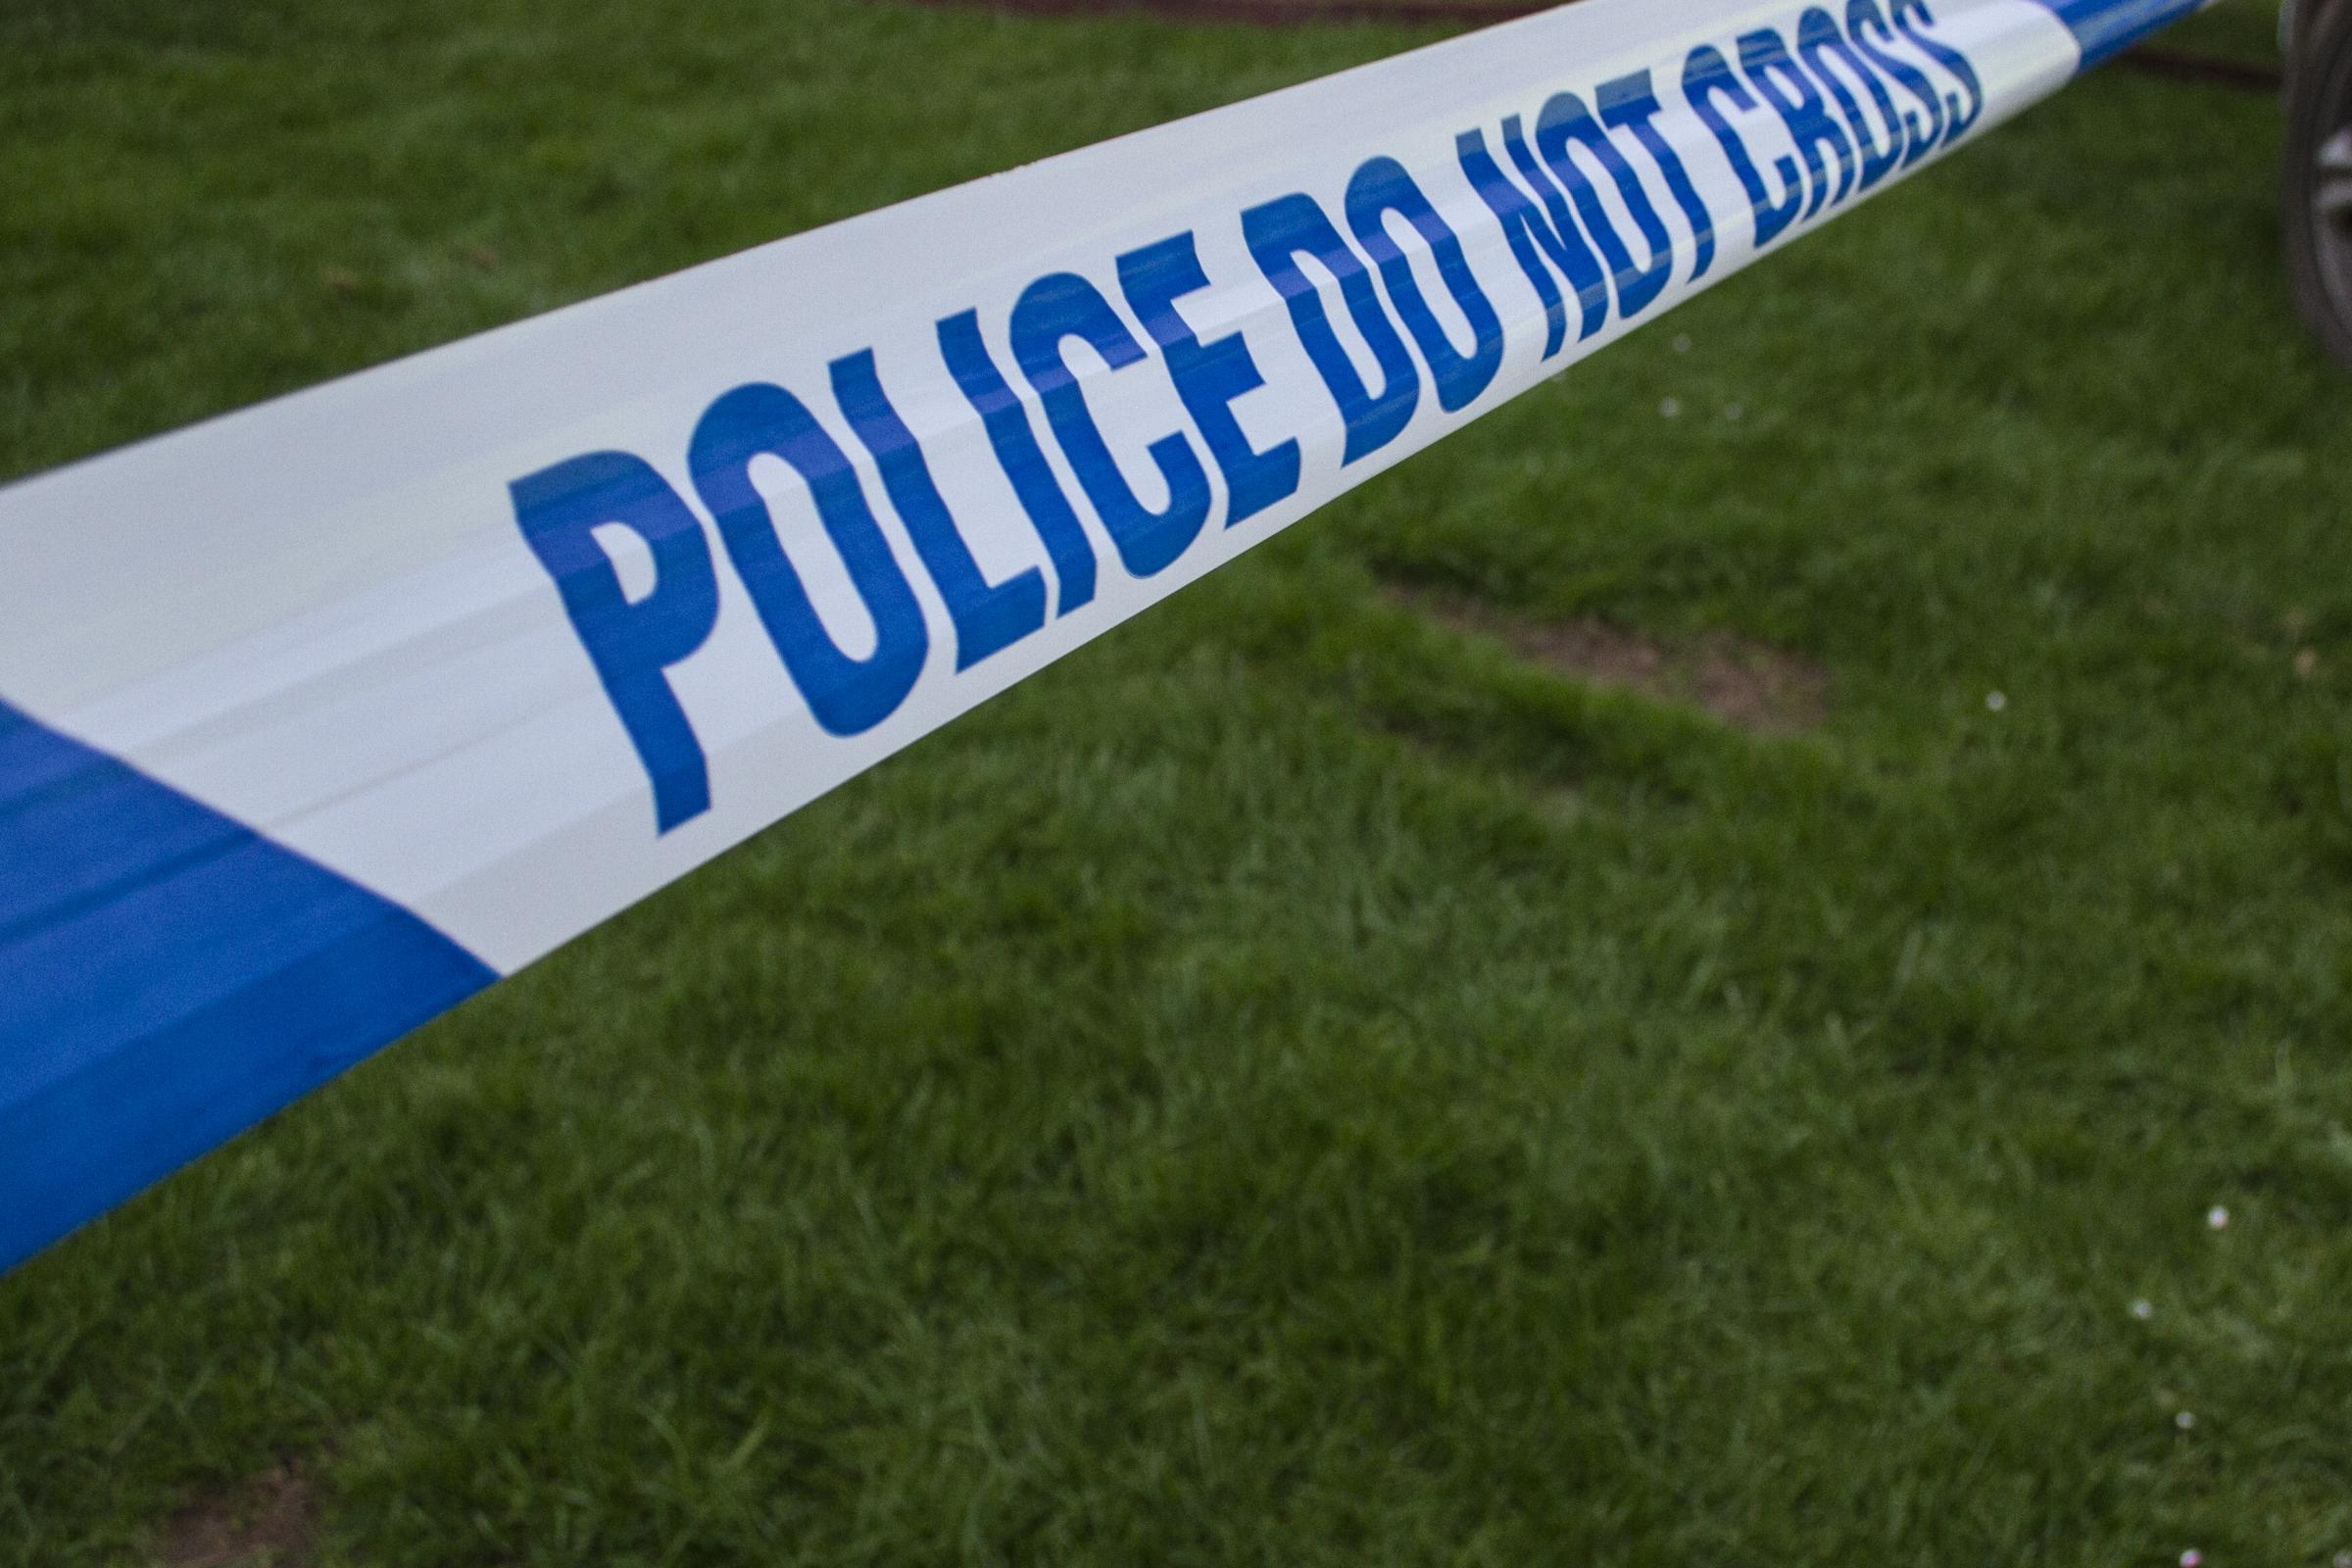 Mystery of body found by roadside in South Gloucestershire